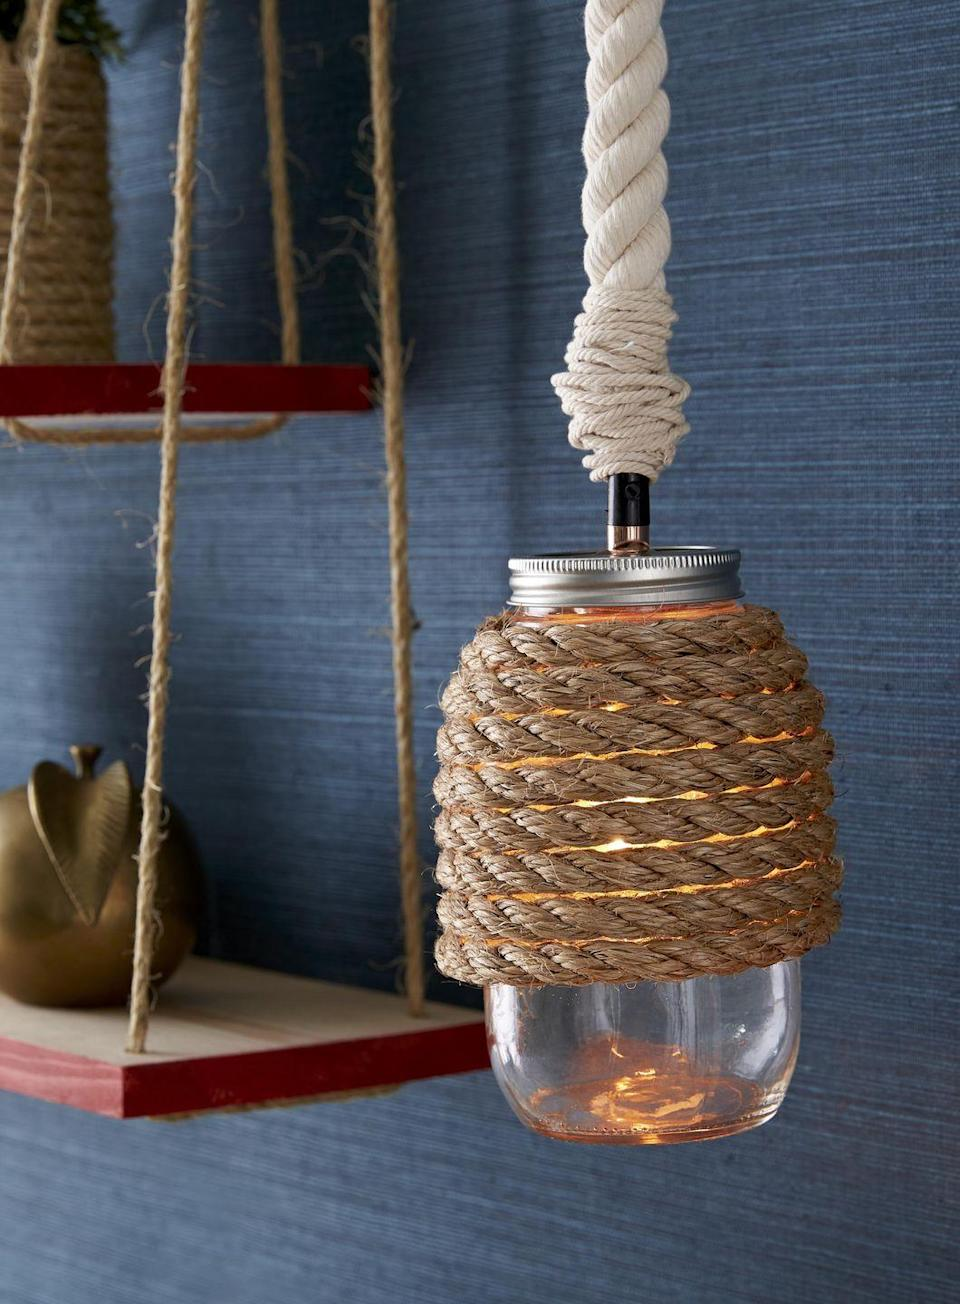 <p>Add a warm subtle glow above your desk or kitchen island with this simple DIY hanging lamp.<br><br><strong>To make:</strong> Hot-glue manila rope to top three-fourths of a regular-mouth mason jar. Wrap the wire of a mason jar pendant light kit with cotton rope, and hold in place with glue. Thread light kit onto jar, and hang.</p>